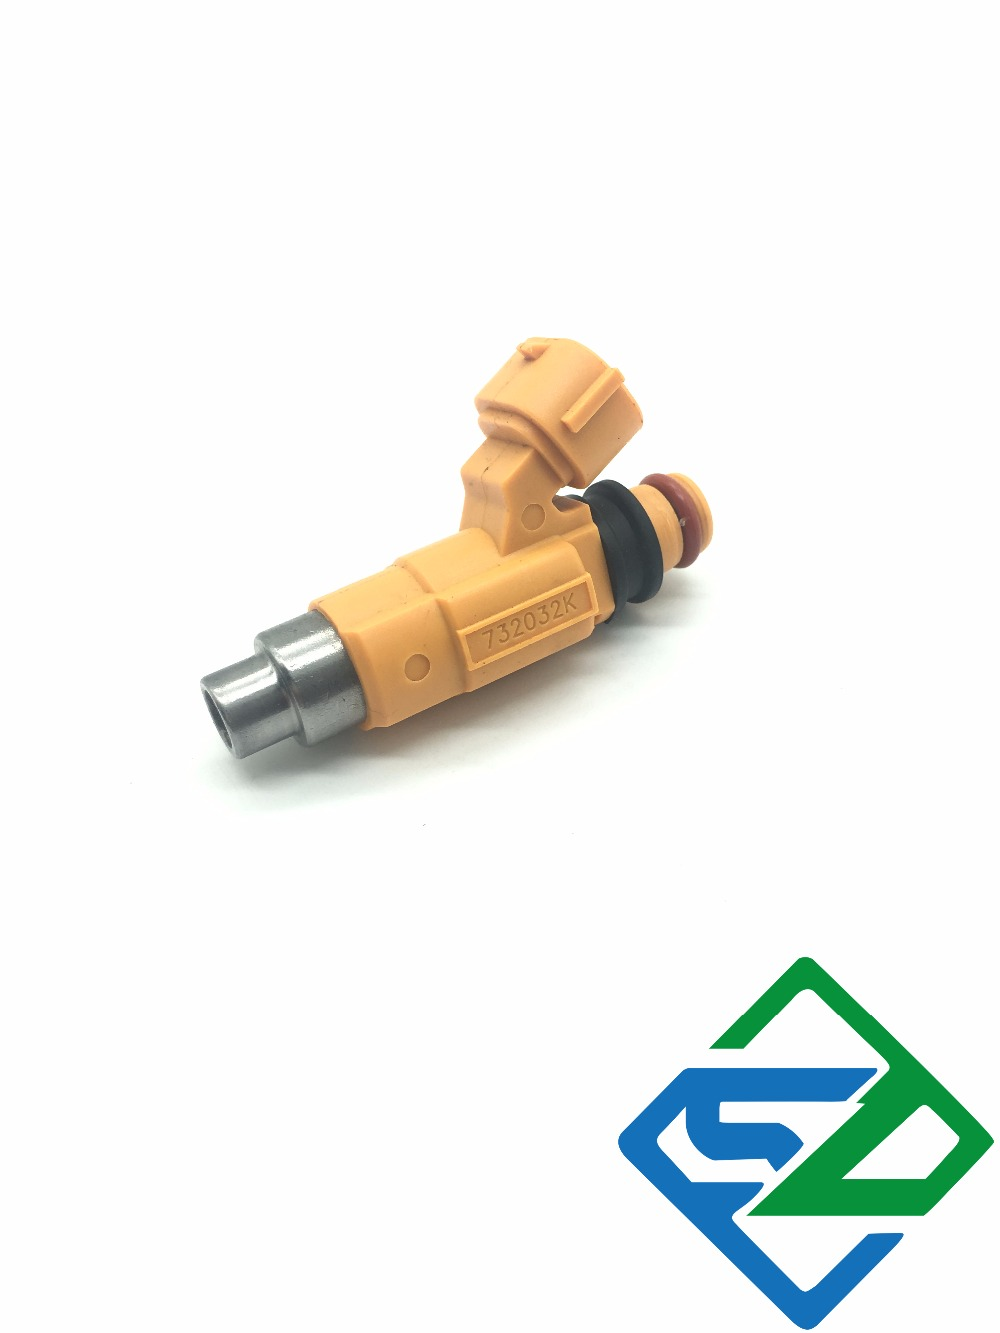 Fuel Injector Nozzle For For Mitsubishi V31 Diamante Eclipse Galant OEM:CDH-275 MD319792 CDH275 FJ871 4G1447 1550369 AW347305 M